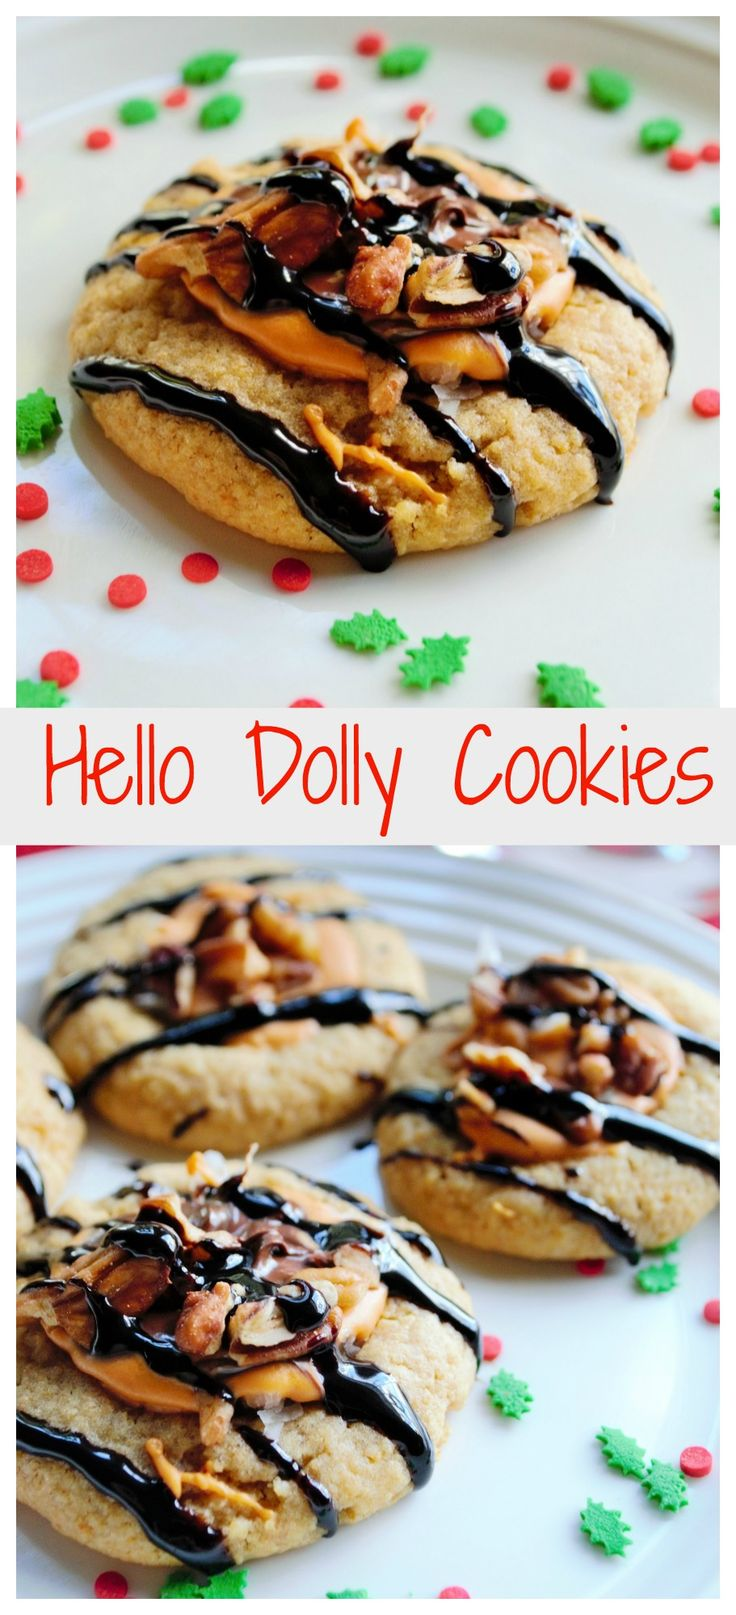 Hello dolly, Hello dollies bars and Form of on Pinterest